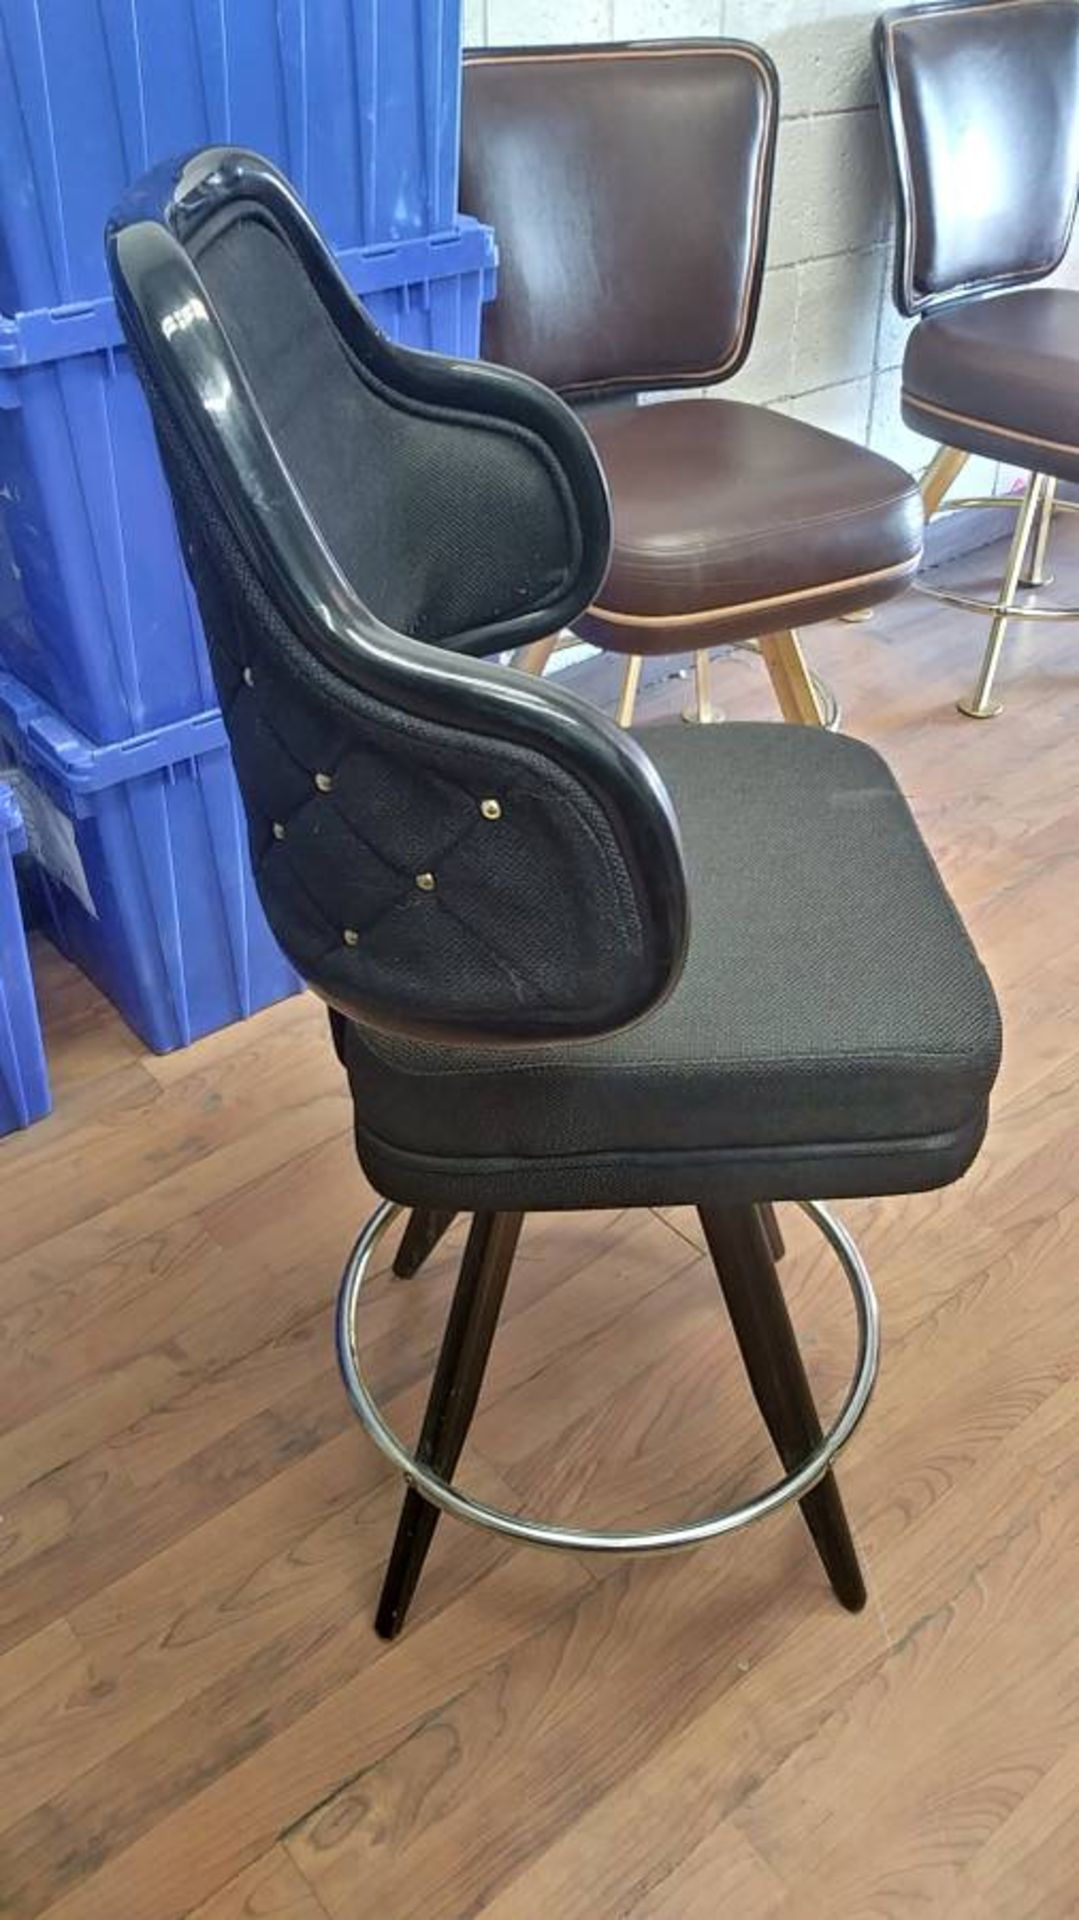 "Lot 349 - BLACK LOUNGE CHAIRS (SHORT STOOLS) W/ ARM & FOOTREST (X MONEY) (40"" TOTAL H X 24"" H FROM SEAT..)"